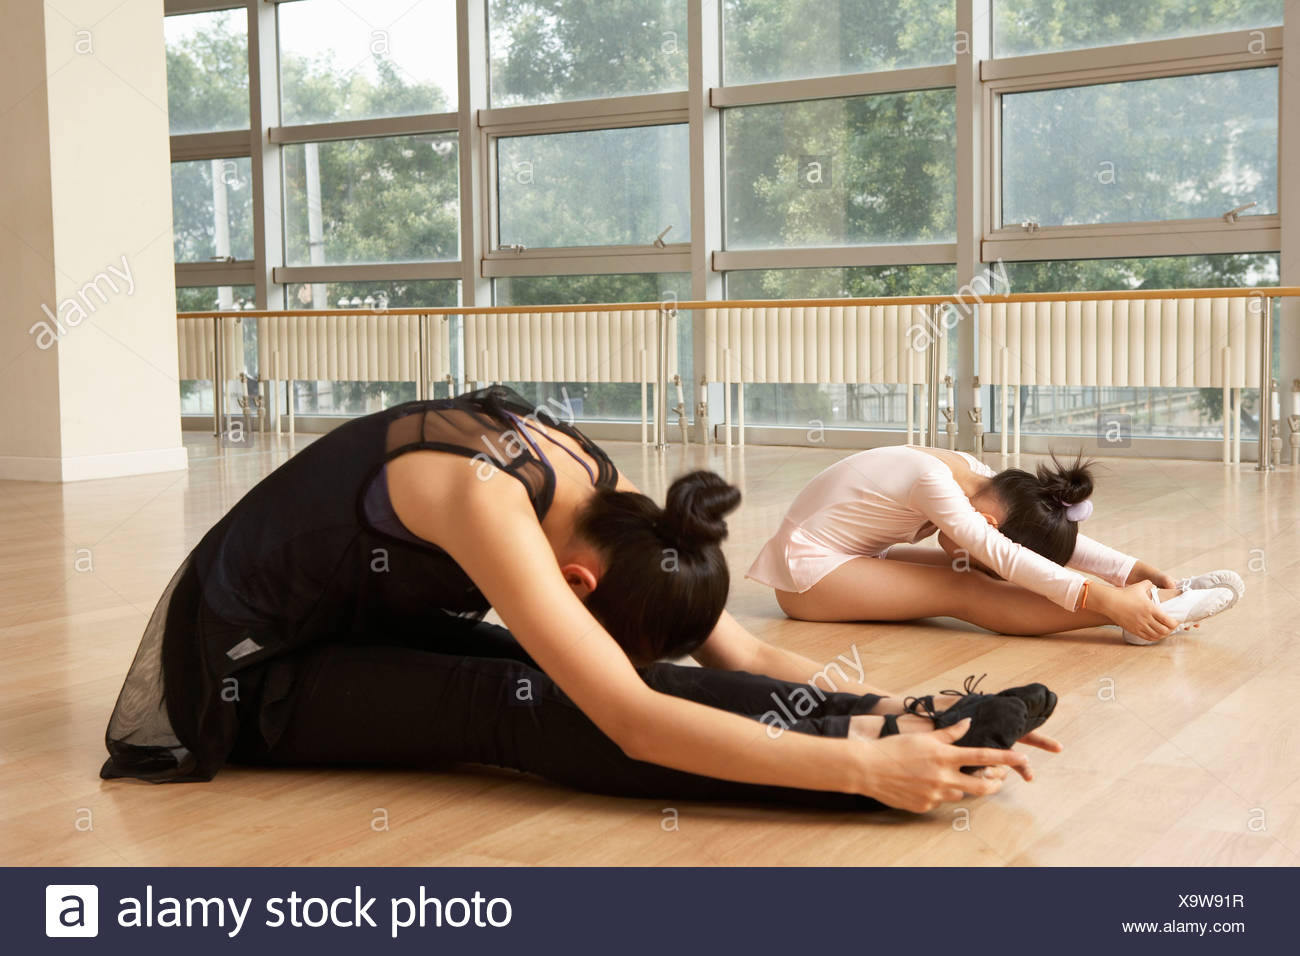 Ballet Dancers Stretching On Floor - Stock Image